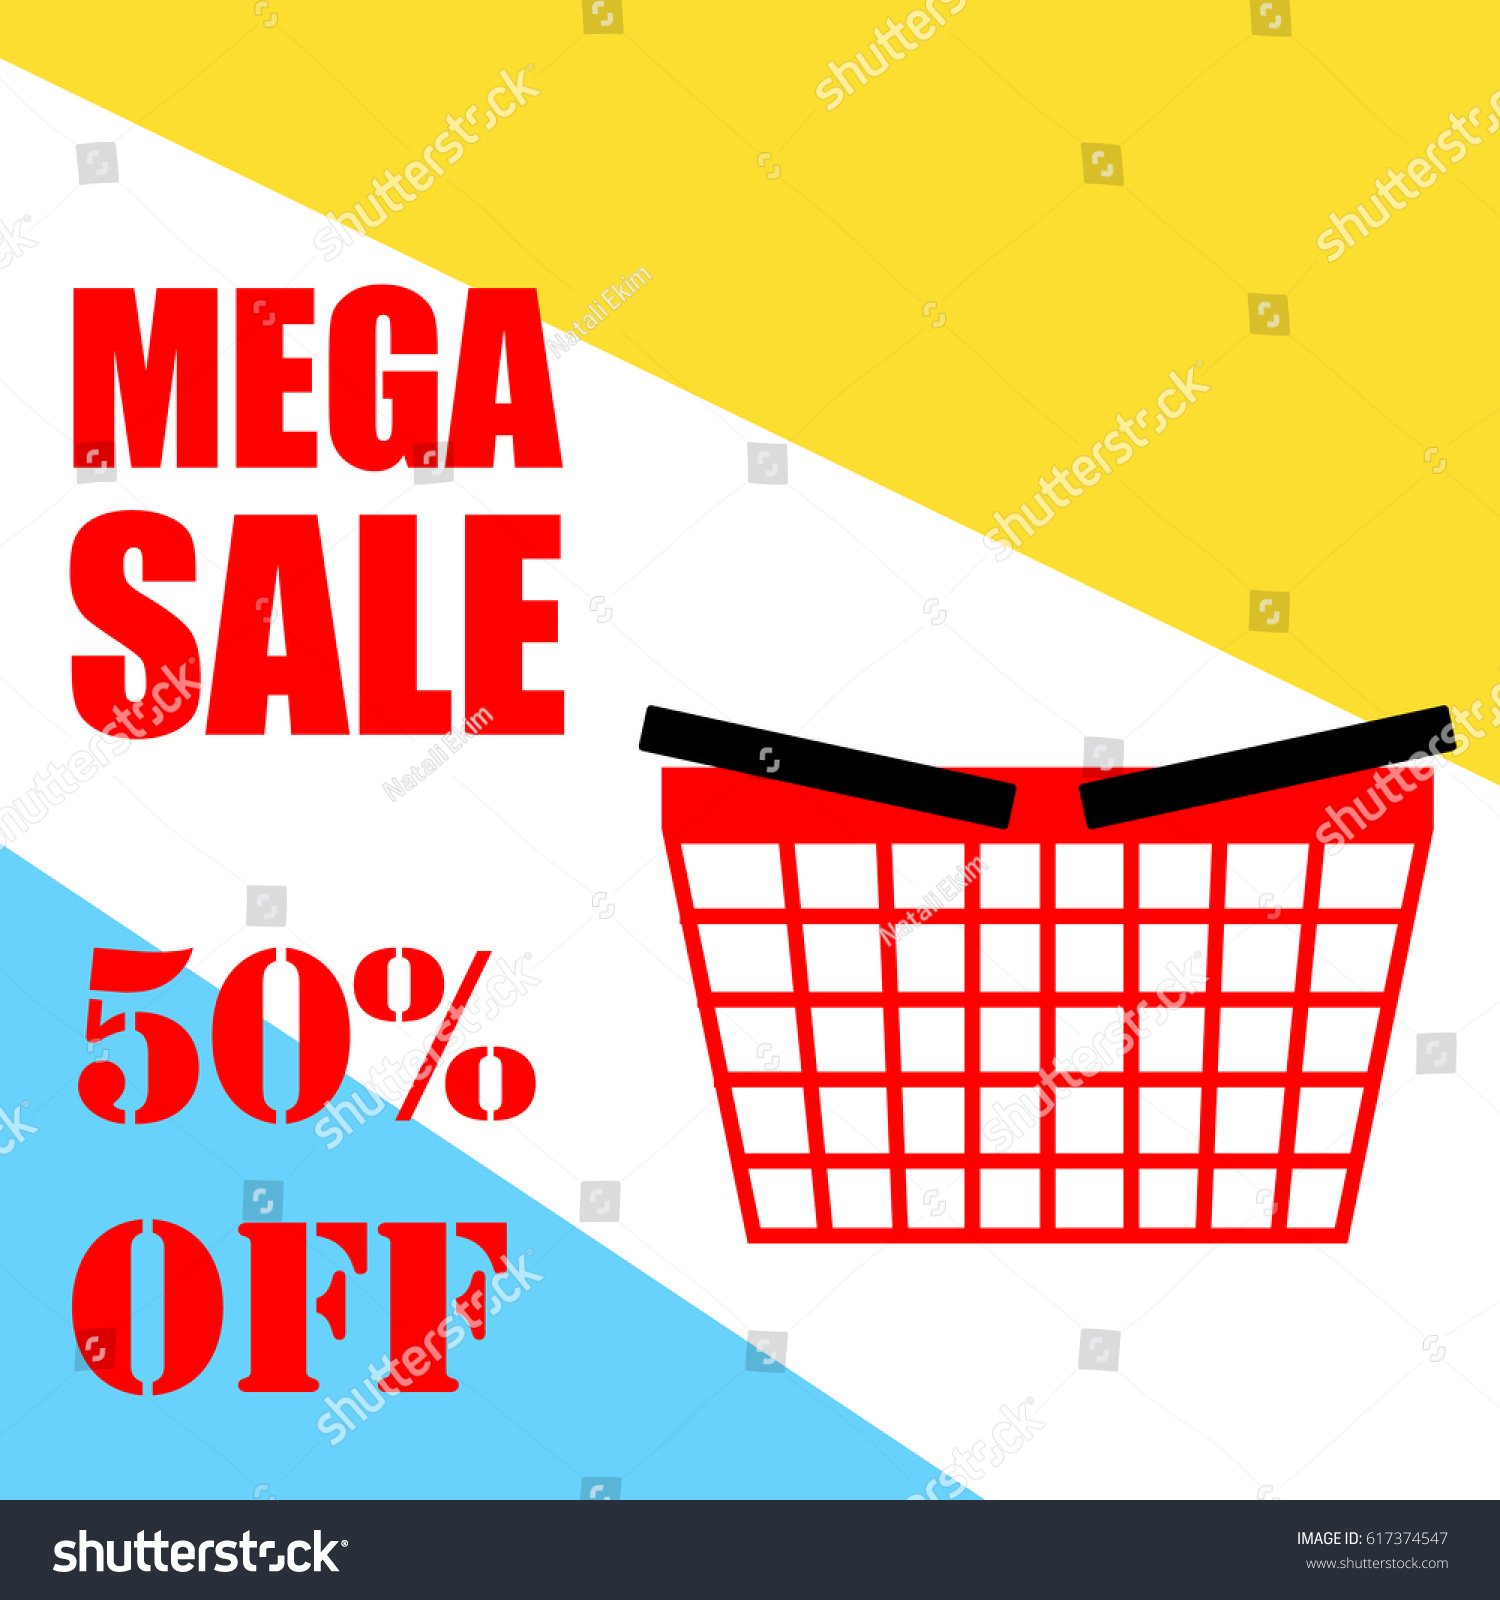 Discount sale greeting card vector products stock vector 617374547 discount sale greeting card vector products business background gifts kristyandbryce Image collections